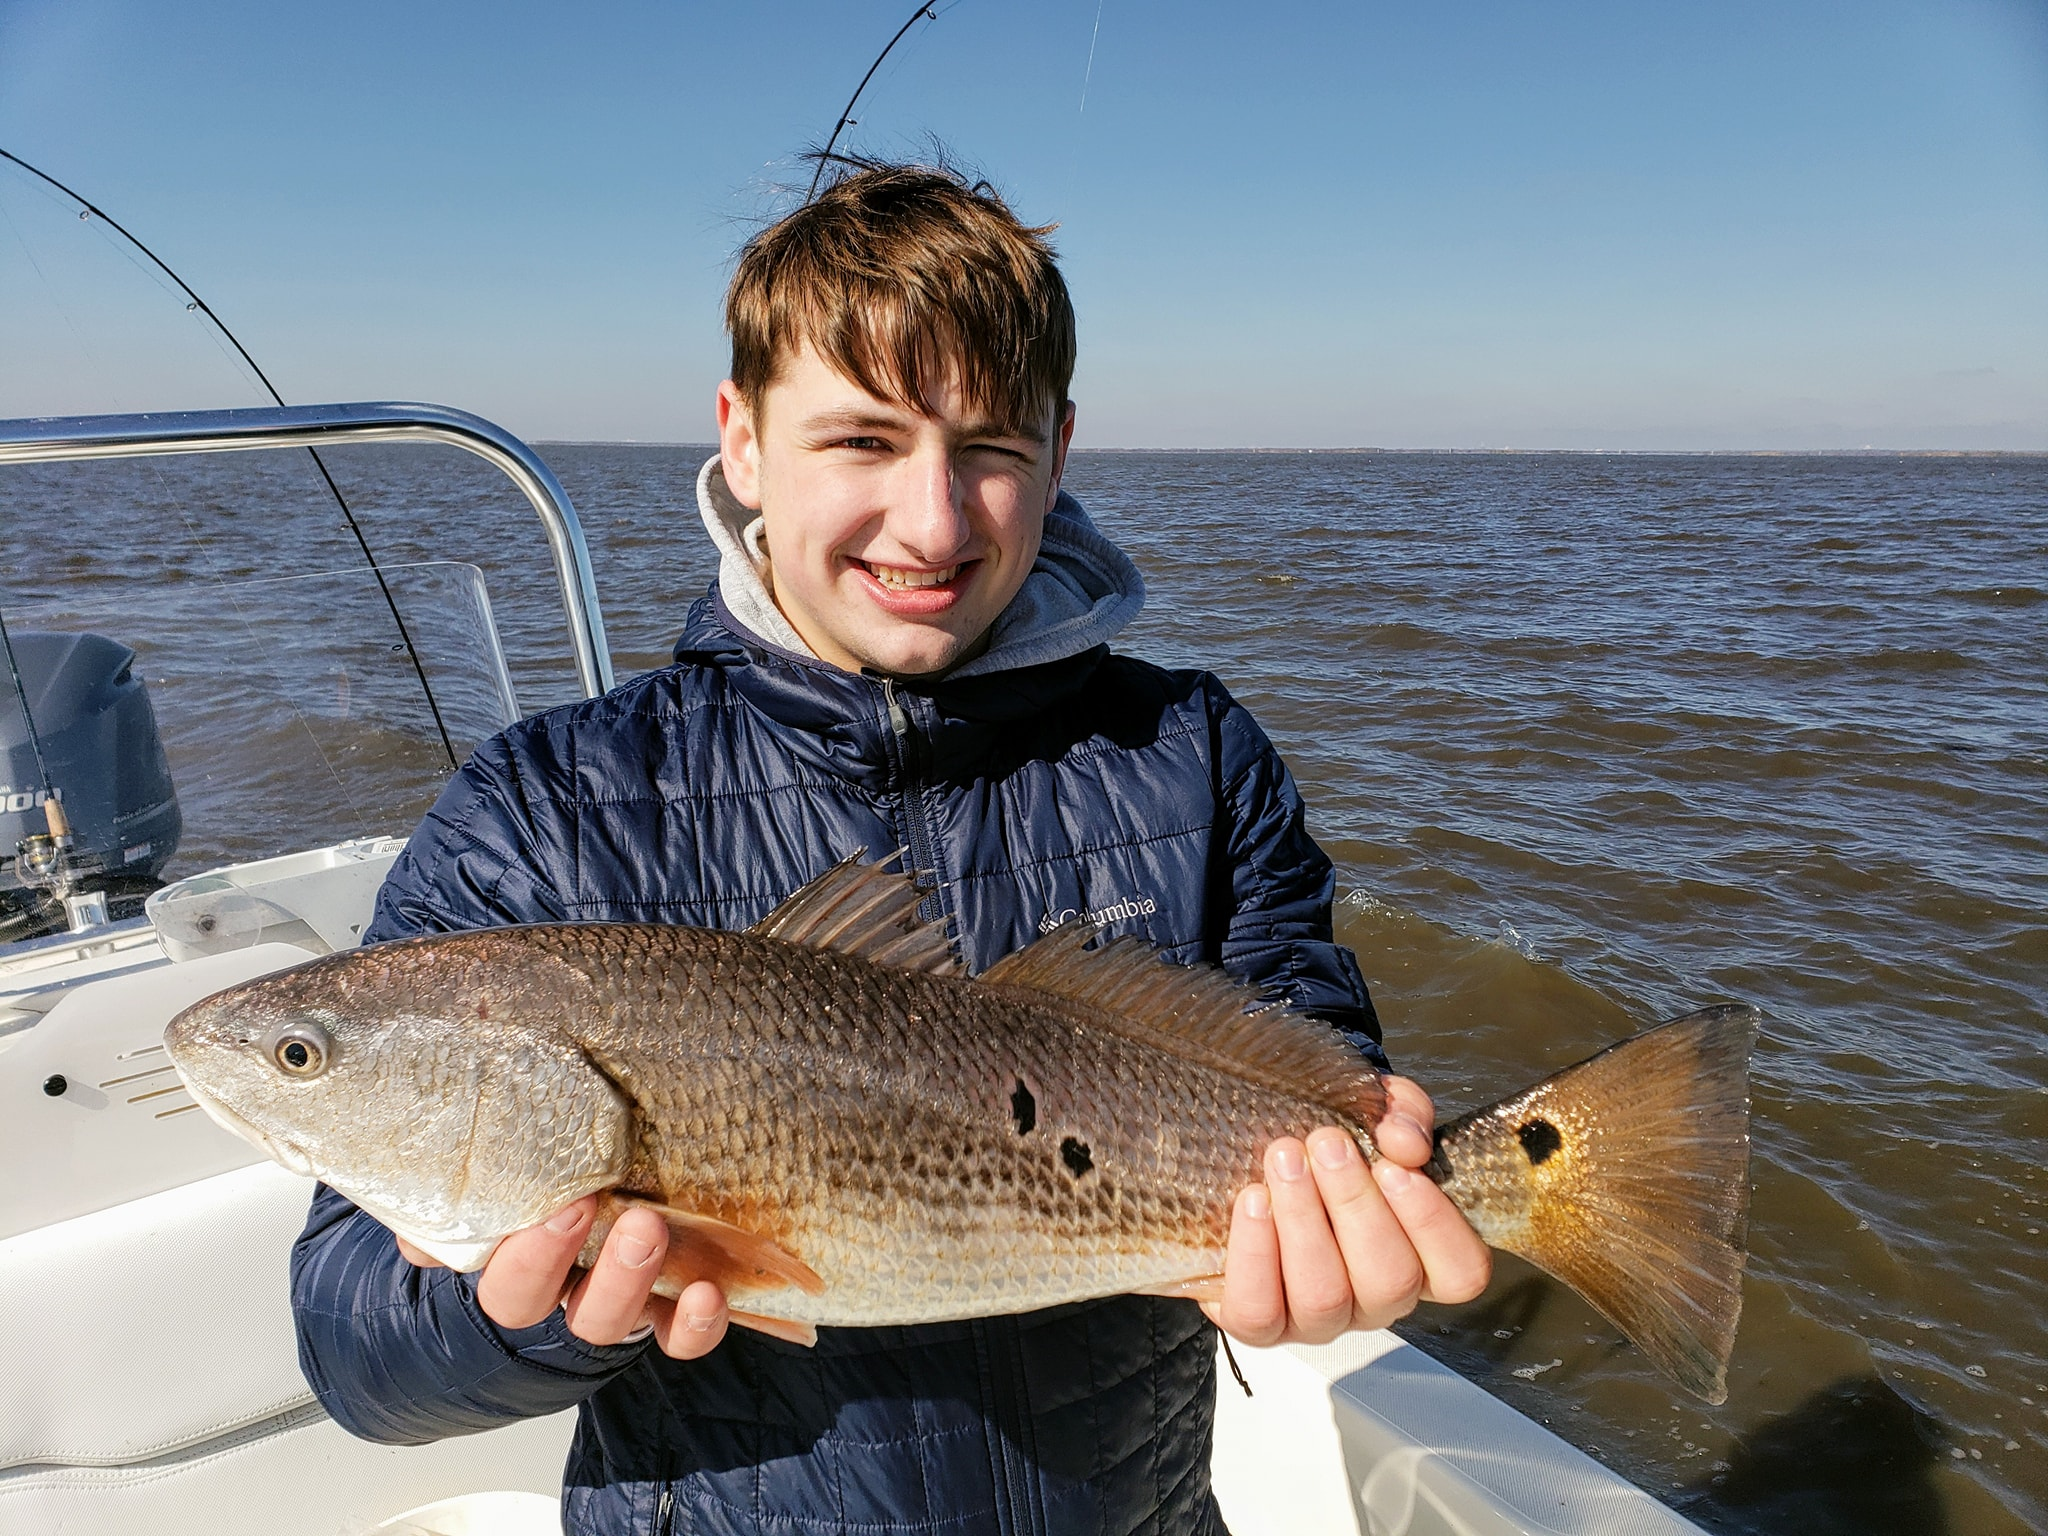 4-person-redfish-trip-1556237127492655672